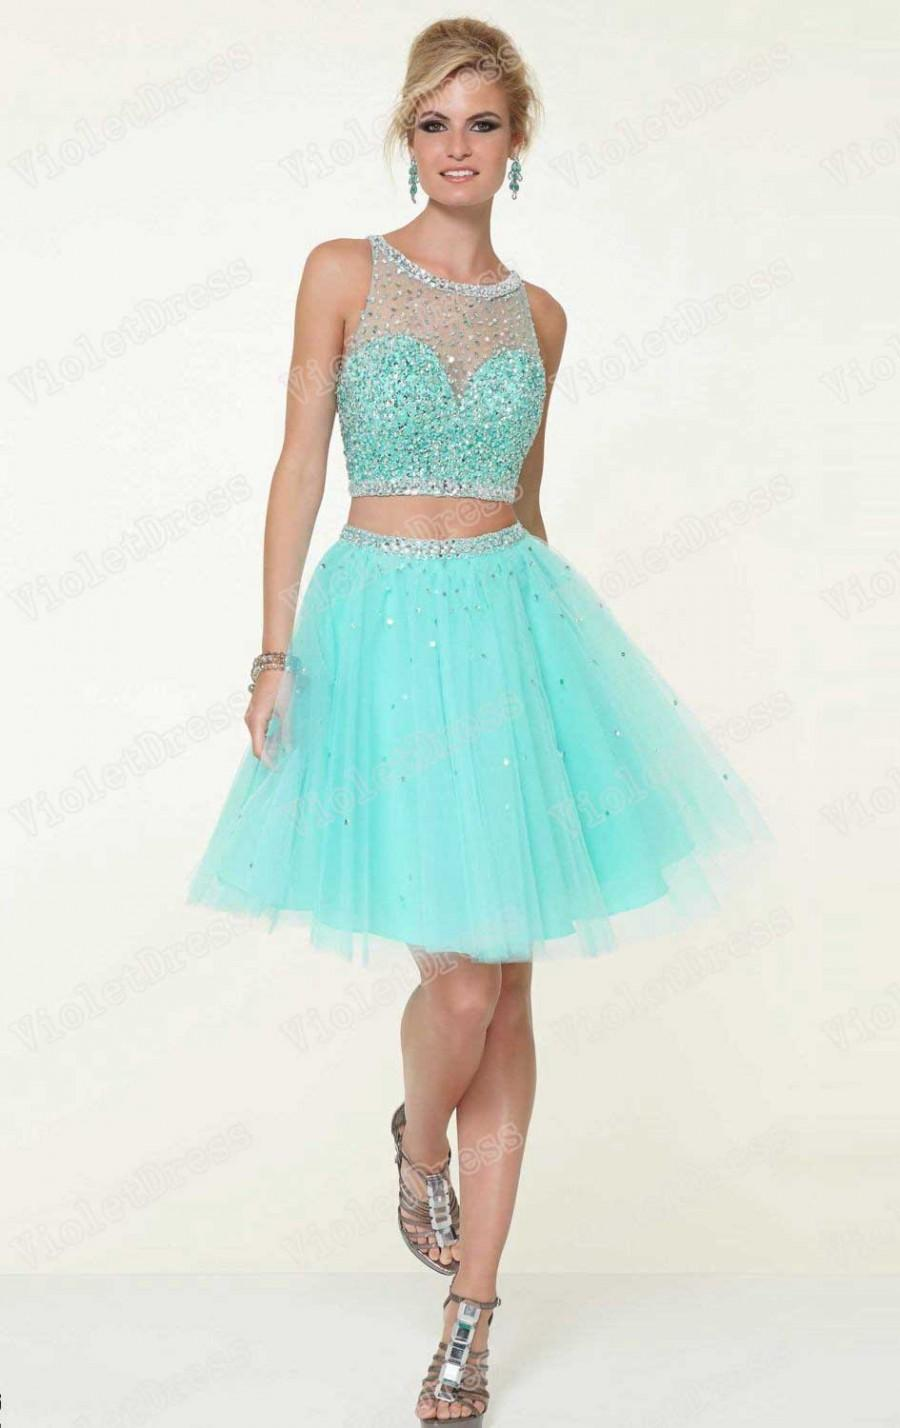 Diamond Tulle Beaded Open Back Short Prom Dress #2440751 - Weddbook